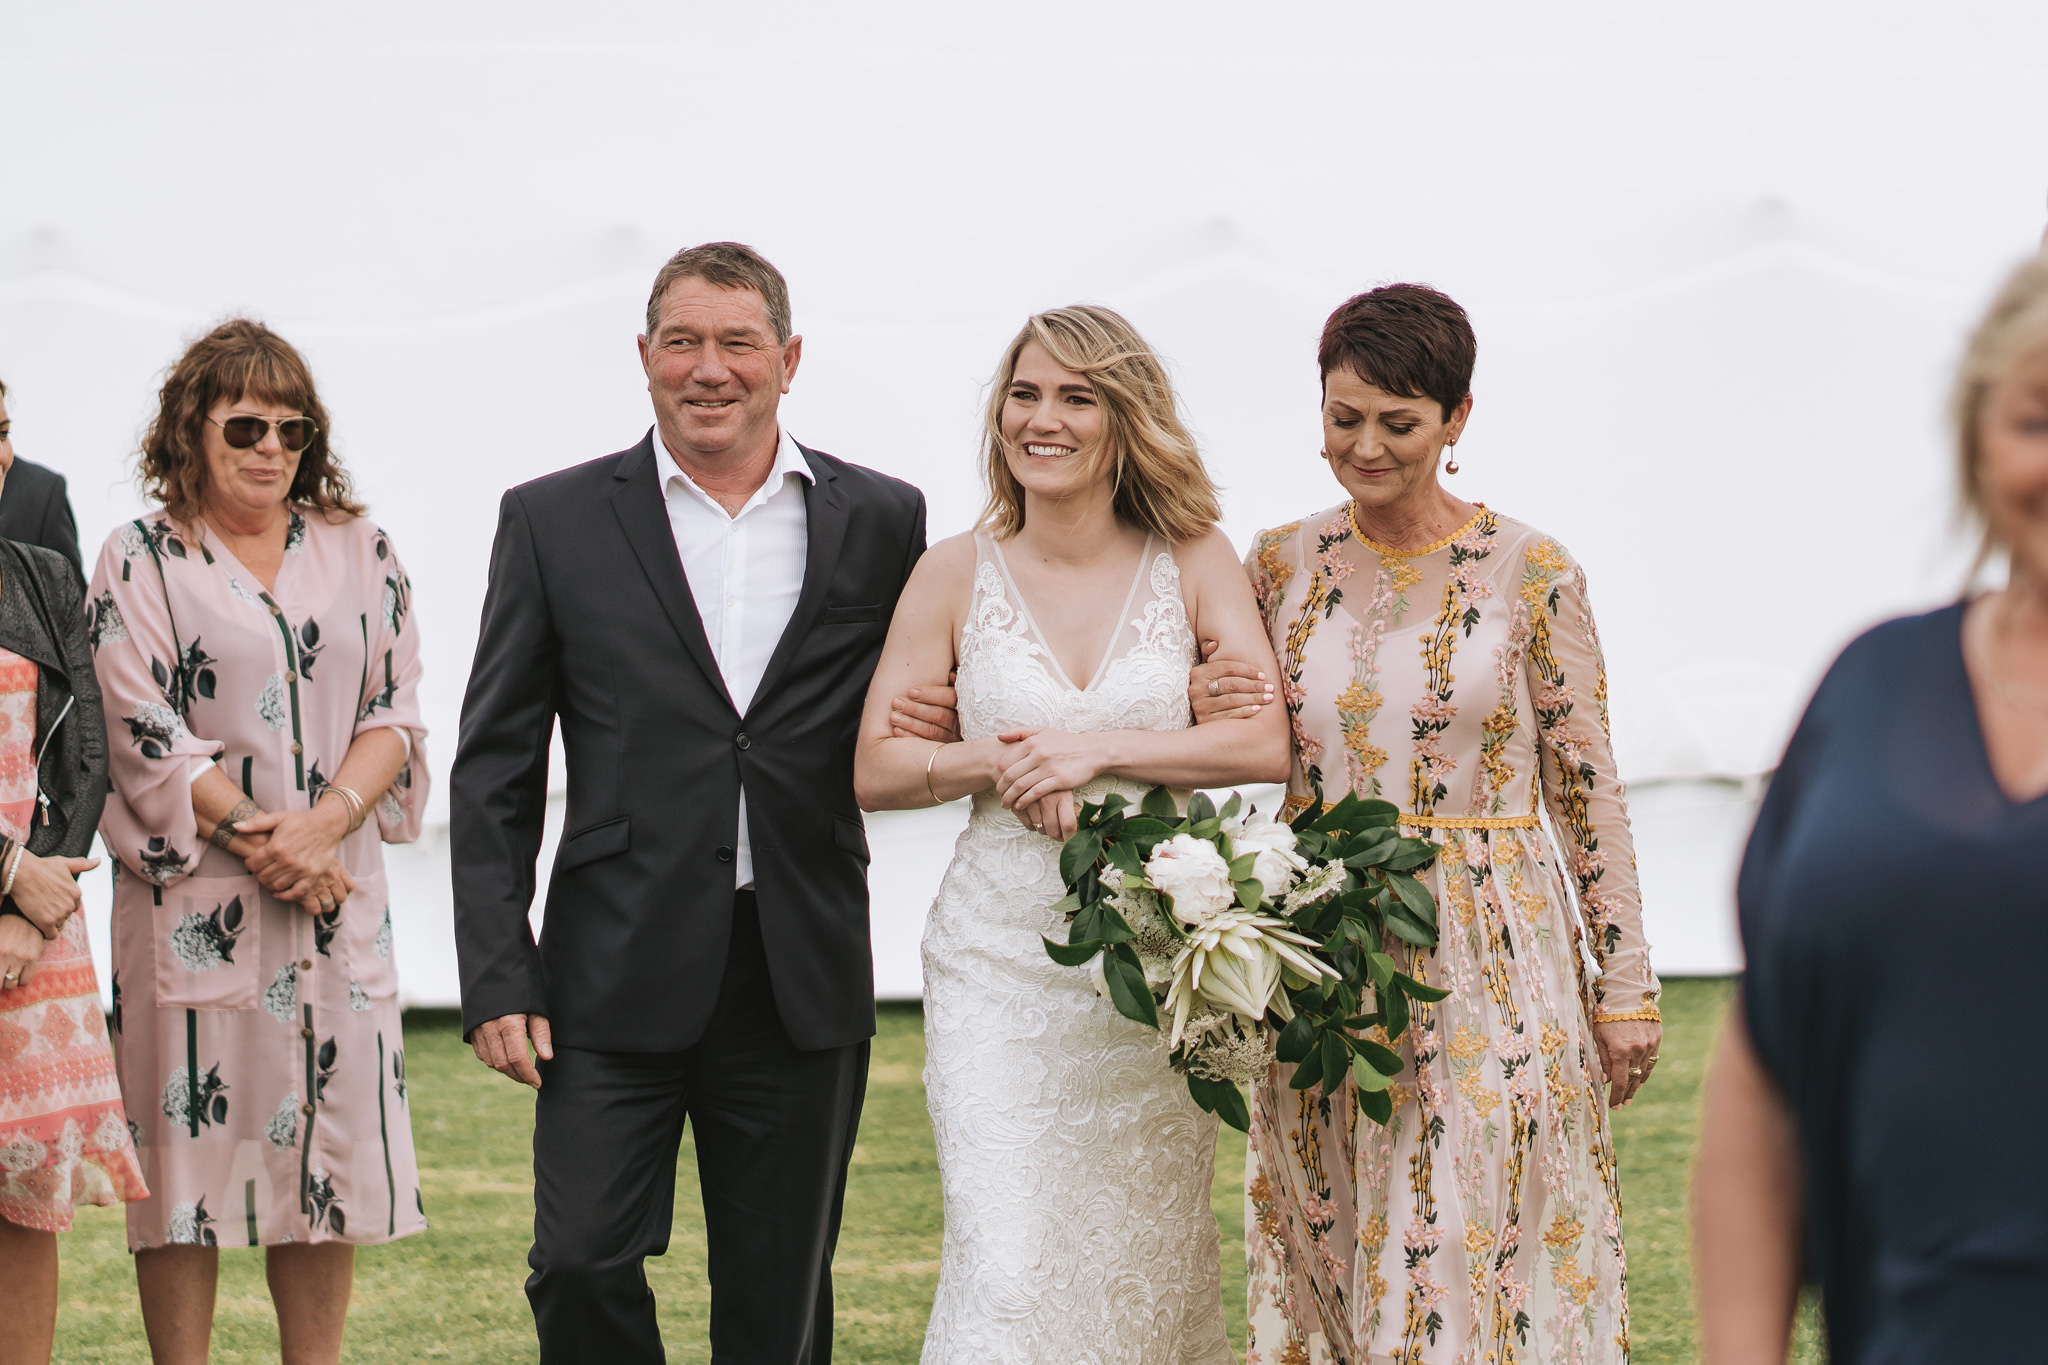 newfound-s-a-tauranga-new-zealand-wedding-photography-439